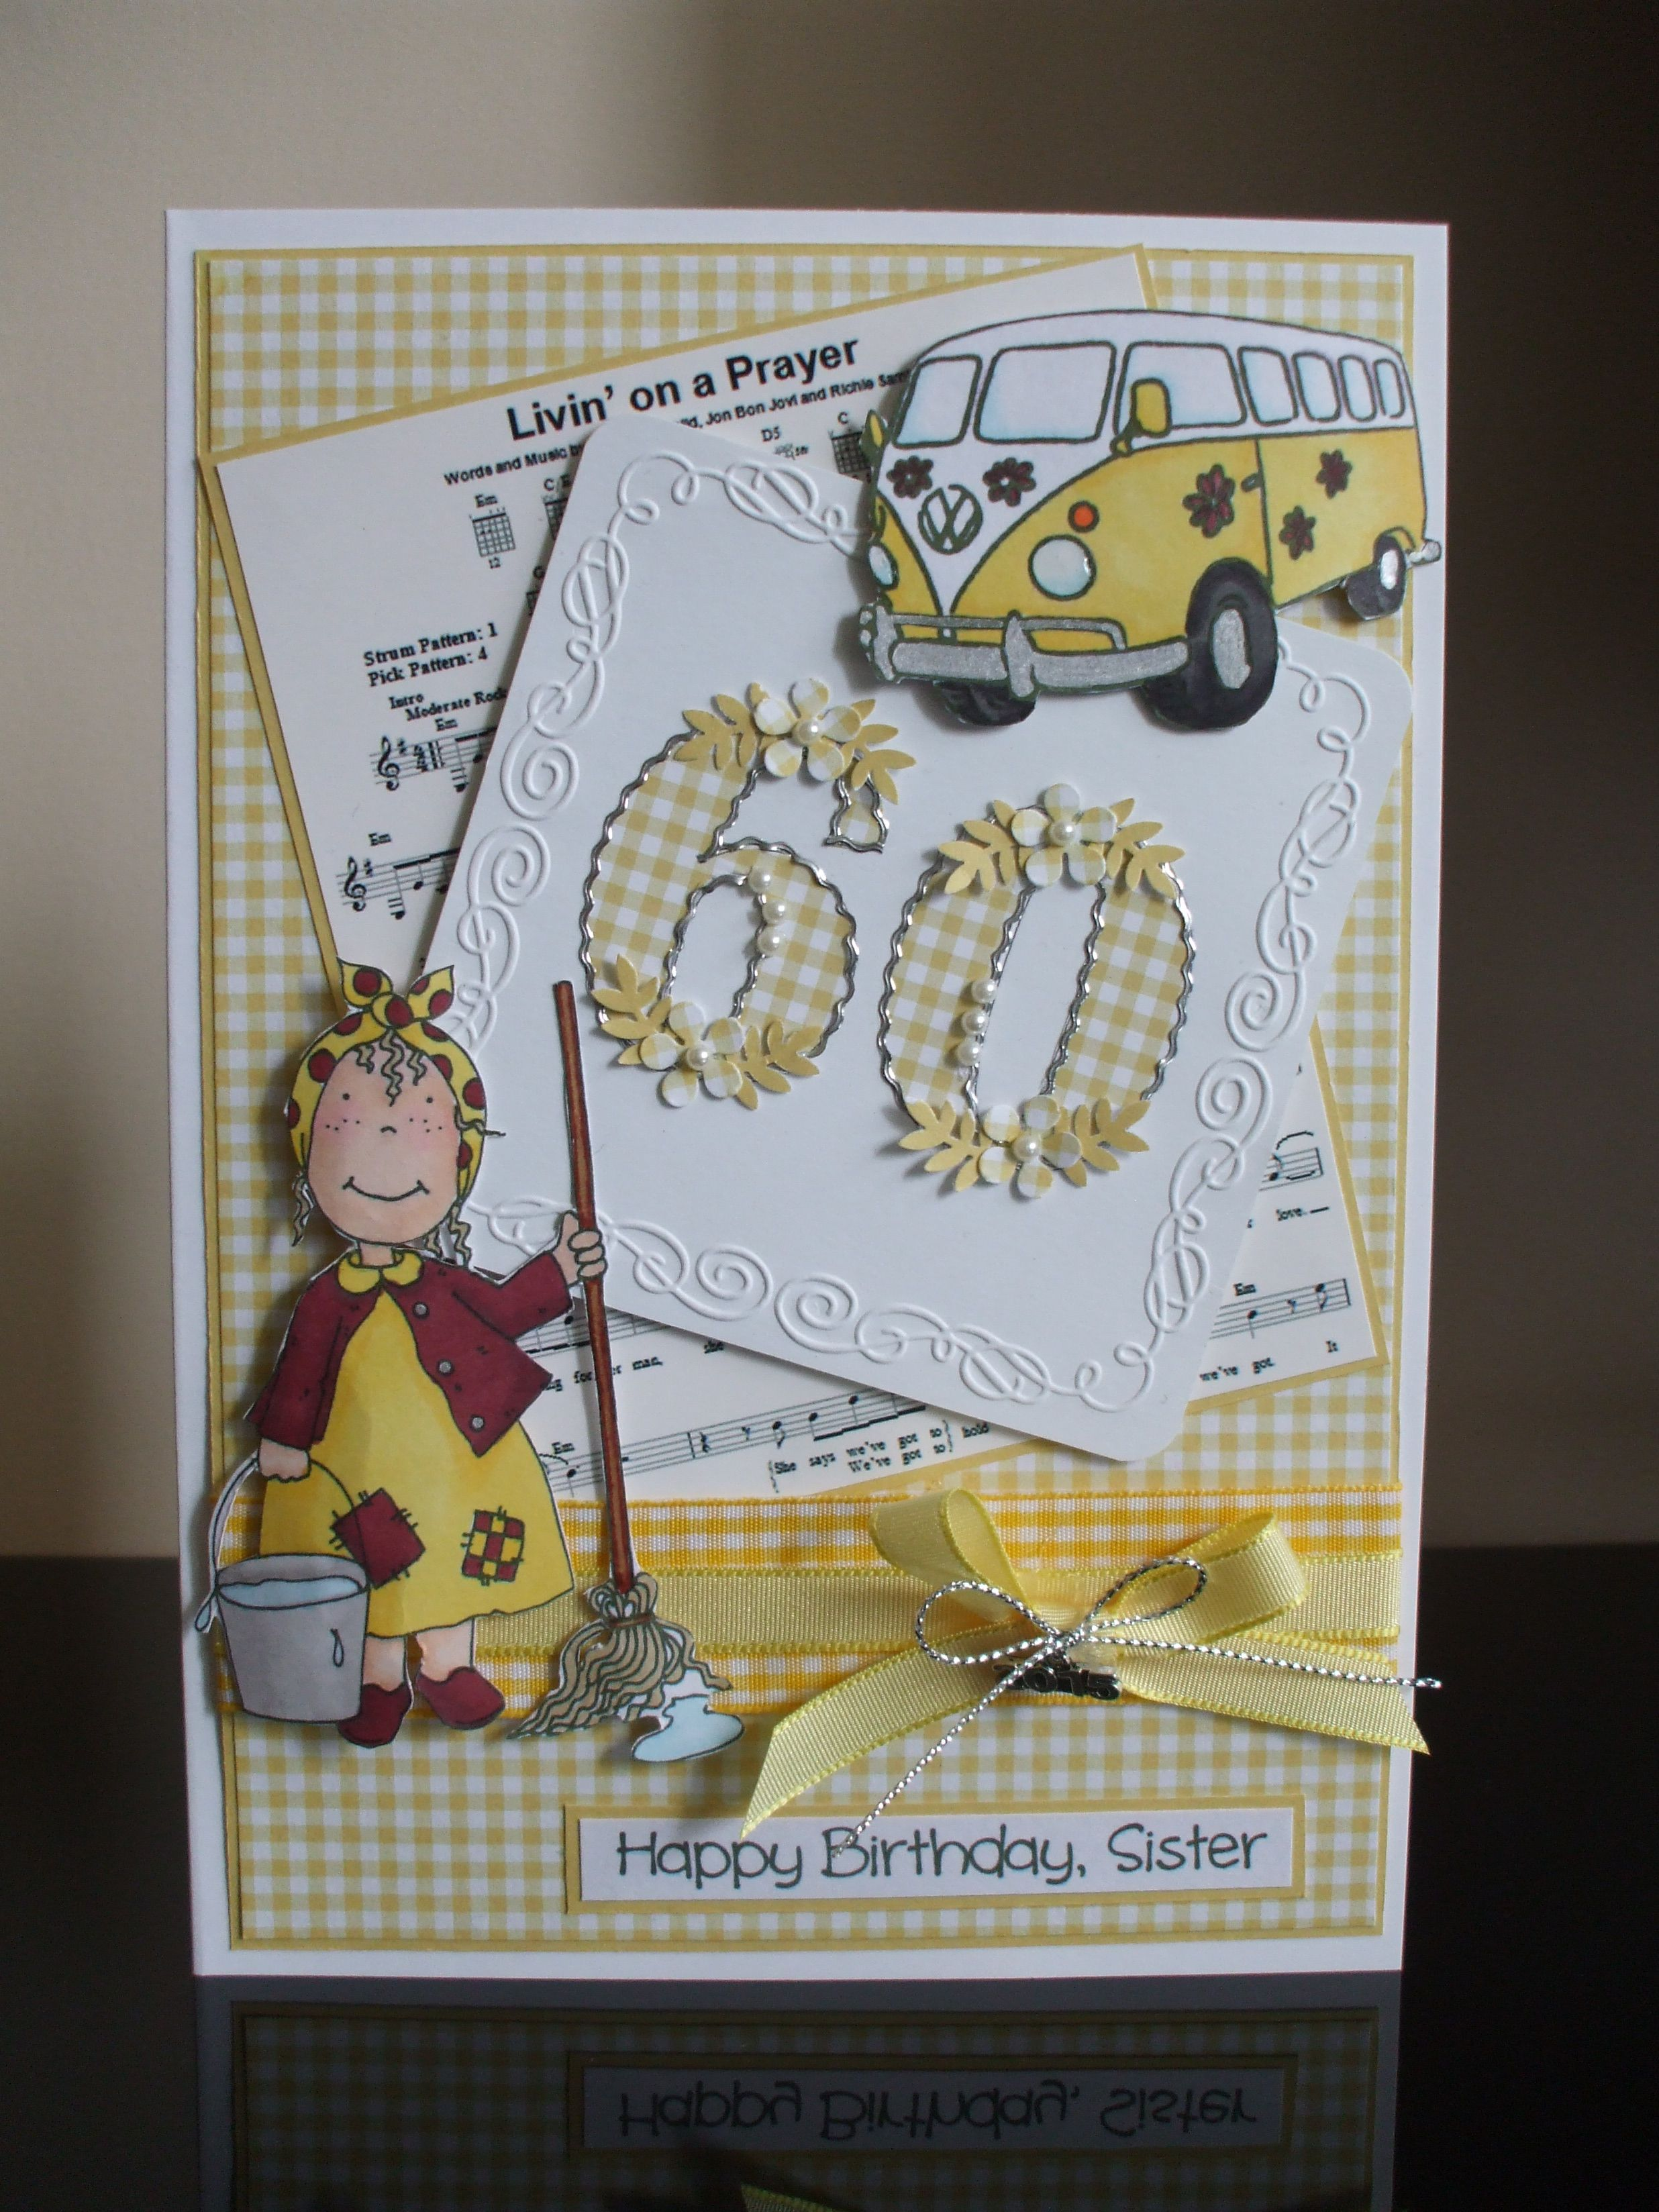 Handmade 60th birthday card, sister (With images) 60th